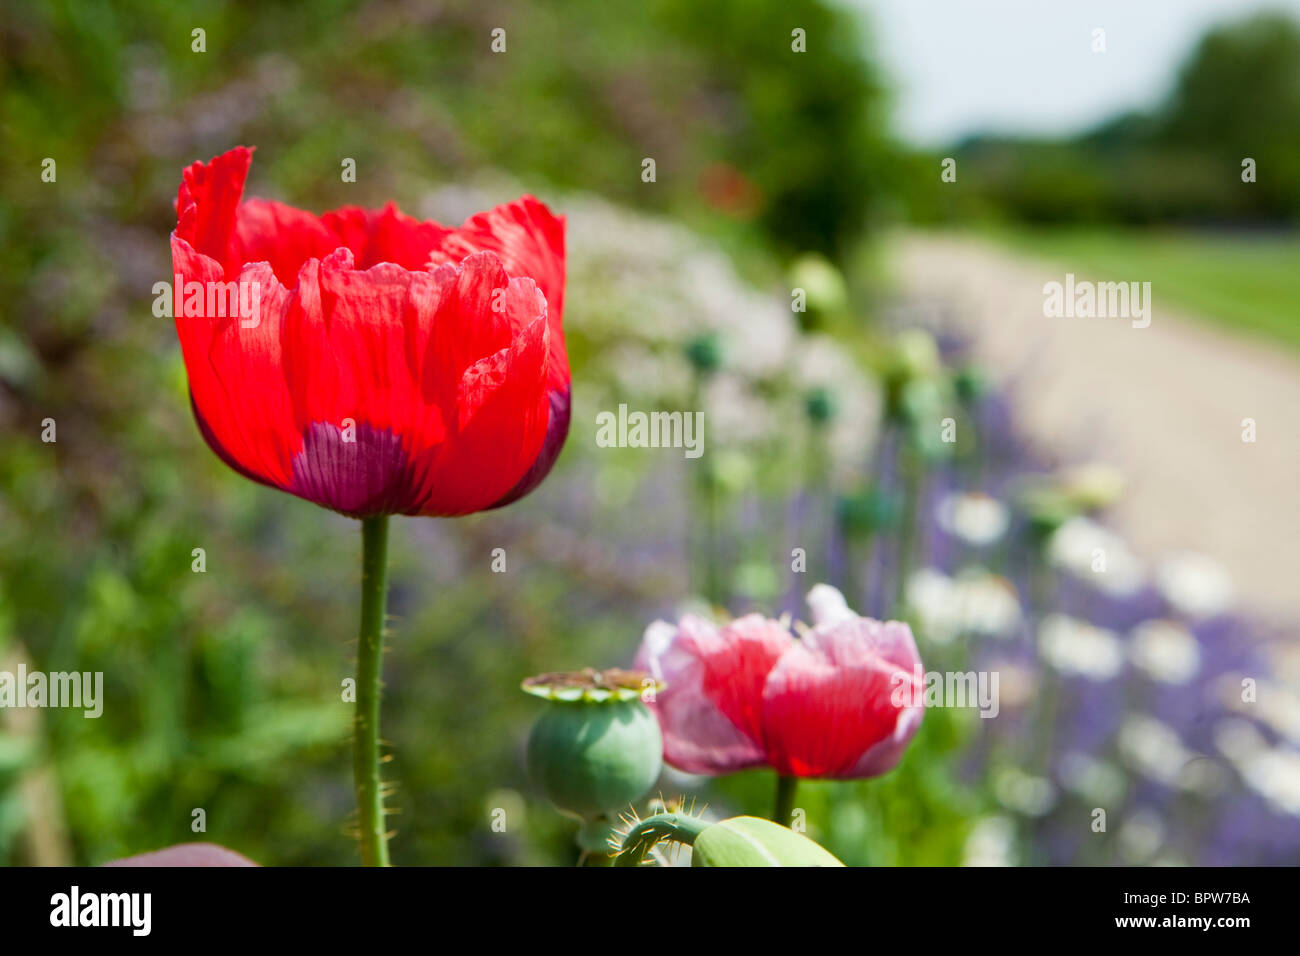 Red Poppy flower in english country garden - Stock Image